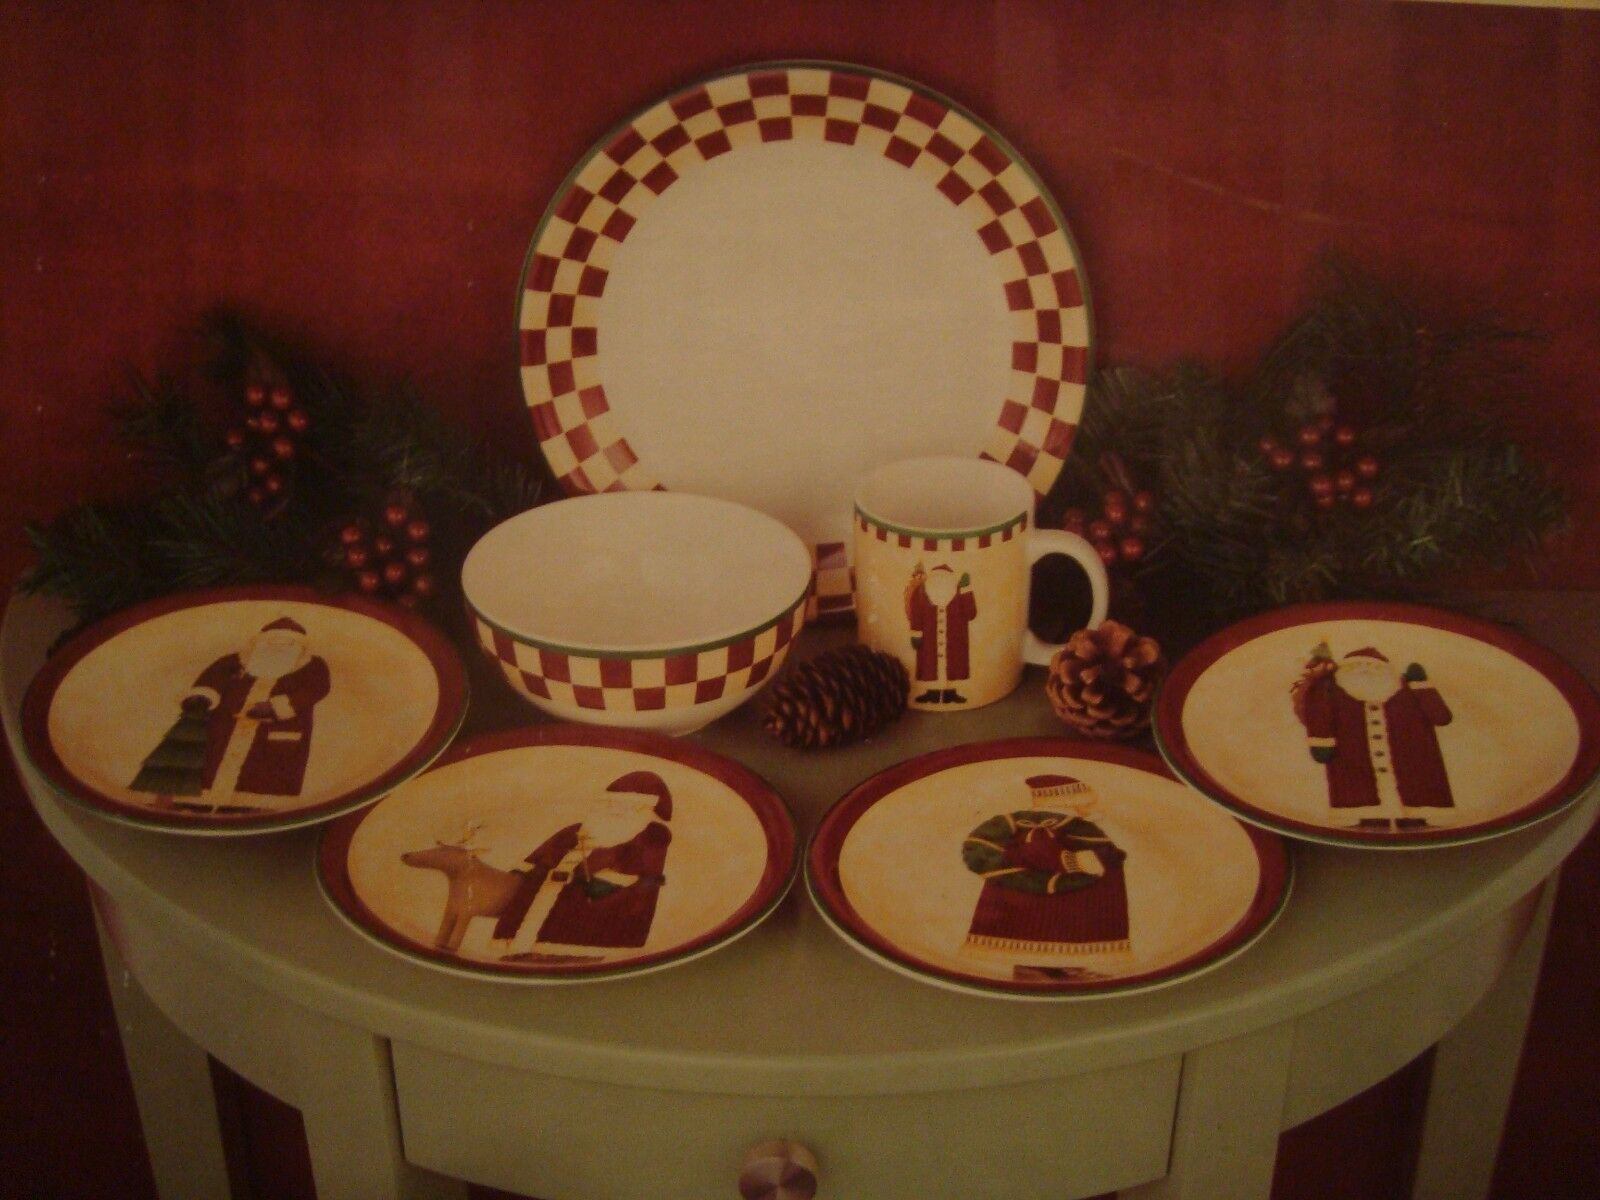 Debbie Mumm Zak Design FOLK ART SANTA 16 Pc Dinnerware Set - NEW in box & Debbie Mumm Zak Design FOLK ART SANTA 16 Pc Dinnerware Set - NEW in ...